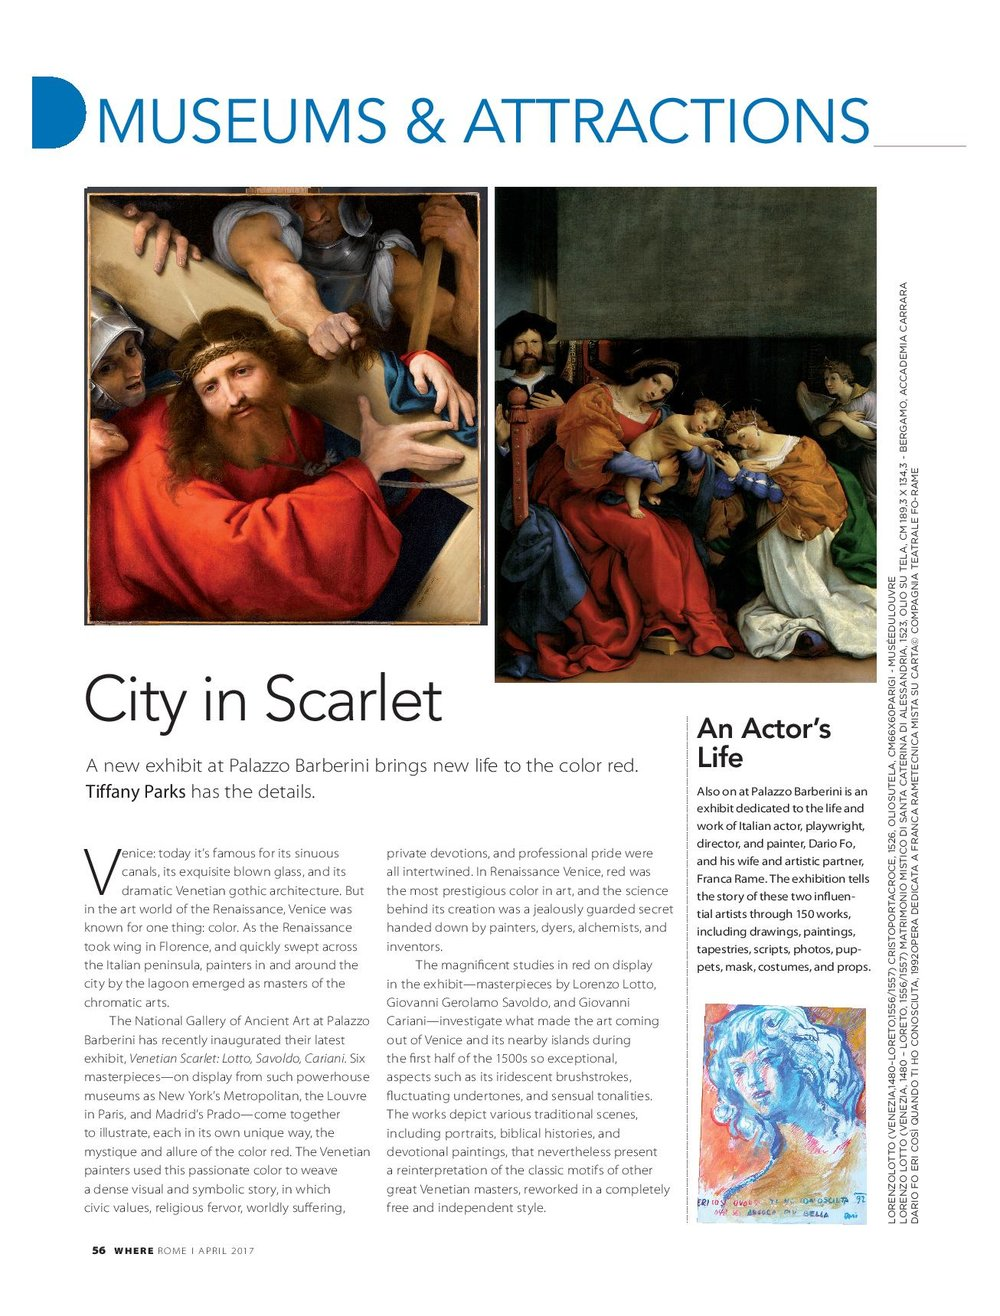 City in Scarlet, Where Rome, April 2017-page-001.jpg